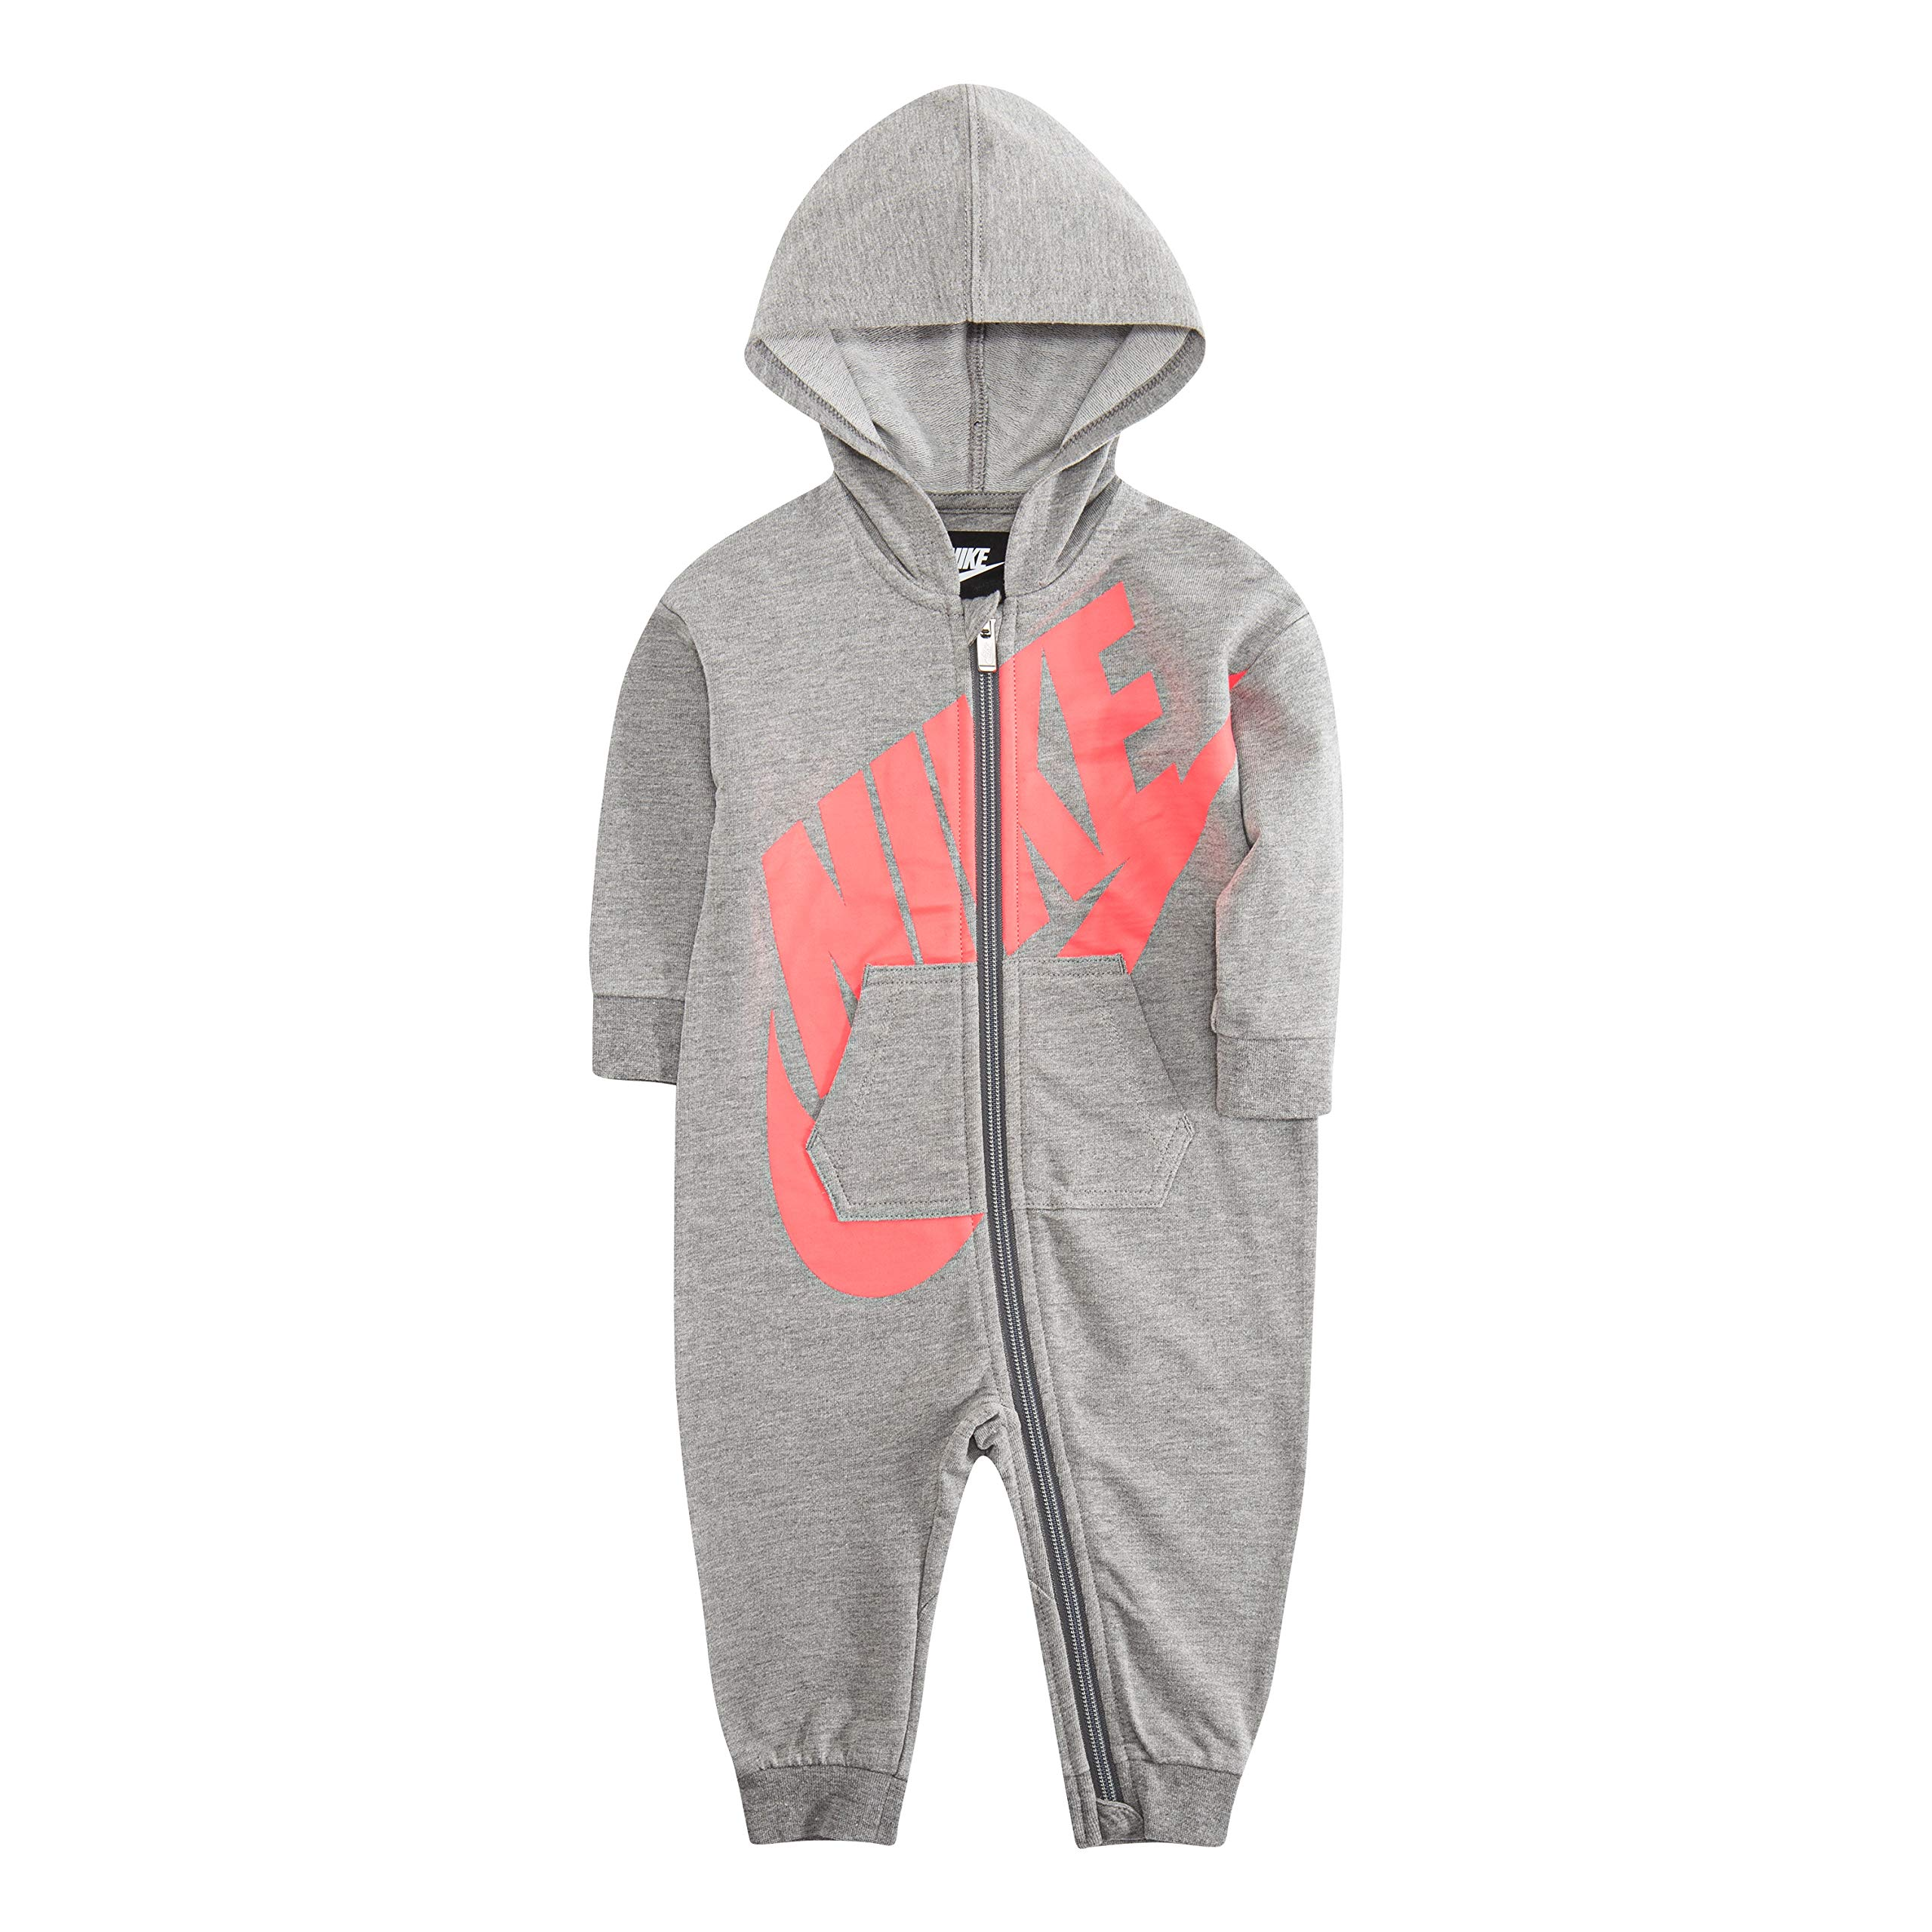 Nike Baby Hooded Coverall, Dark Grey Heather/Pink, 3M by Nike